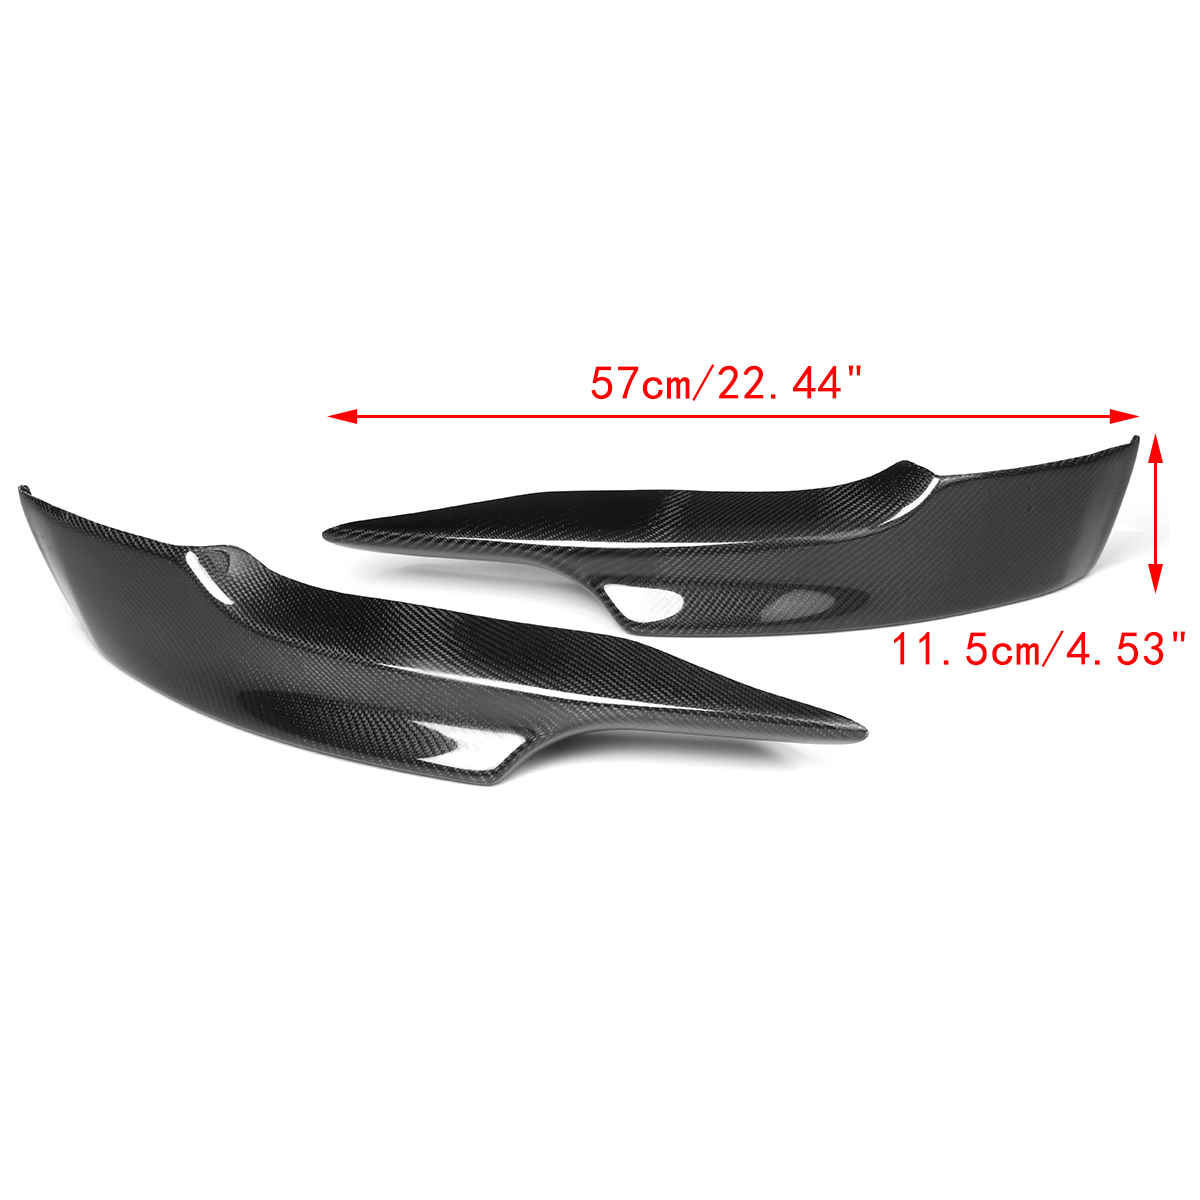 Image 5 - 2PCS Carbon Fiber M Sport Front Bumper Side Splitter Diffuser Lip for BMW E92 E93 2006 2007 2008 PRE LCI M TechBumpers   -